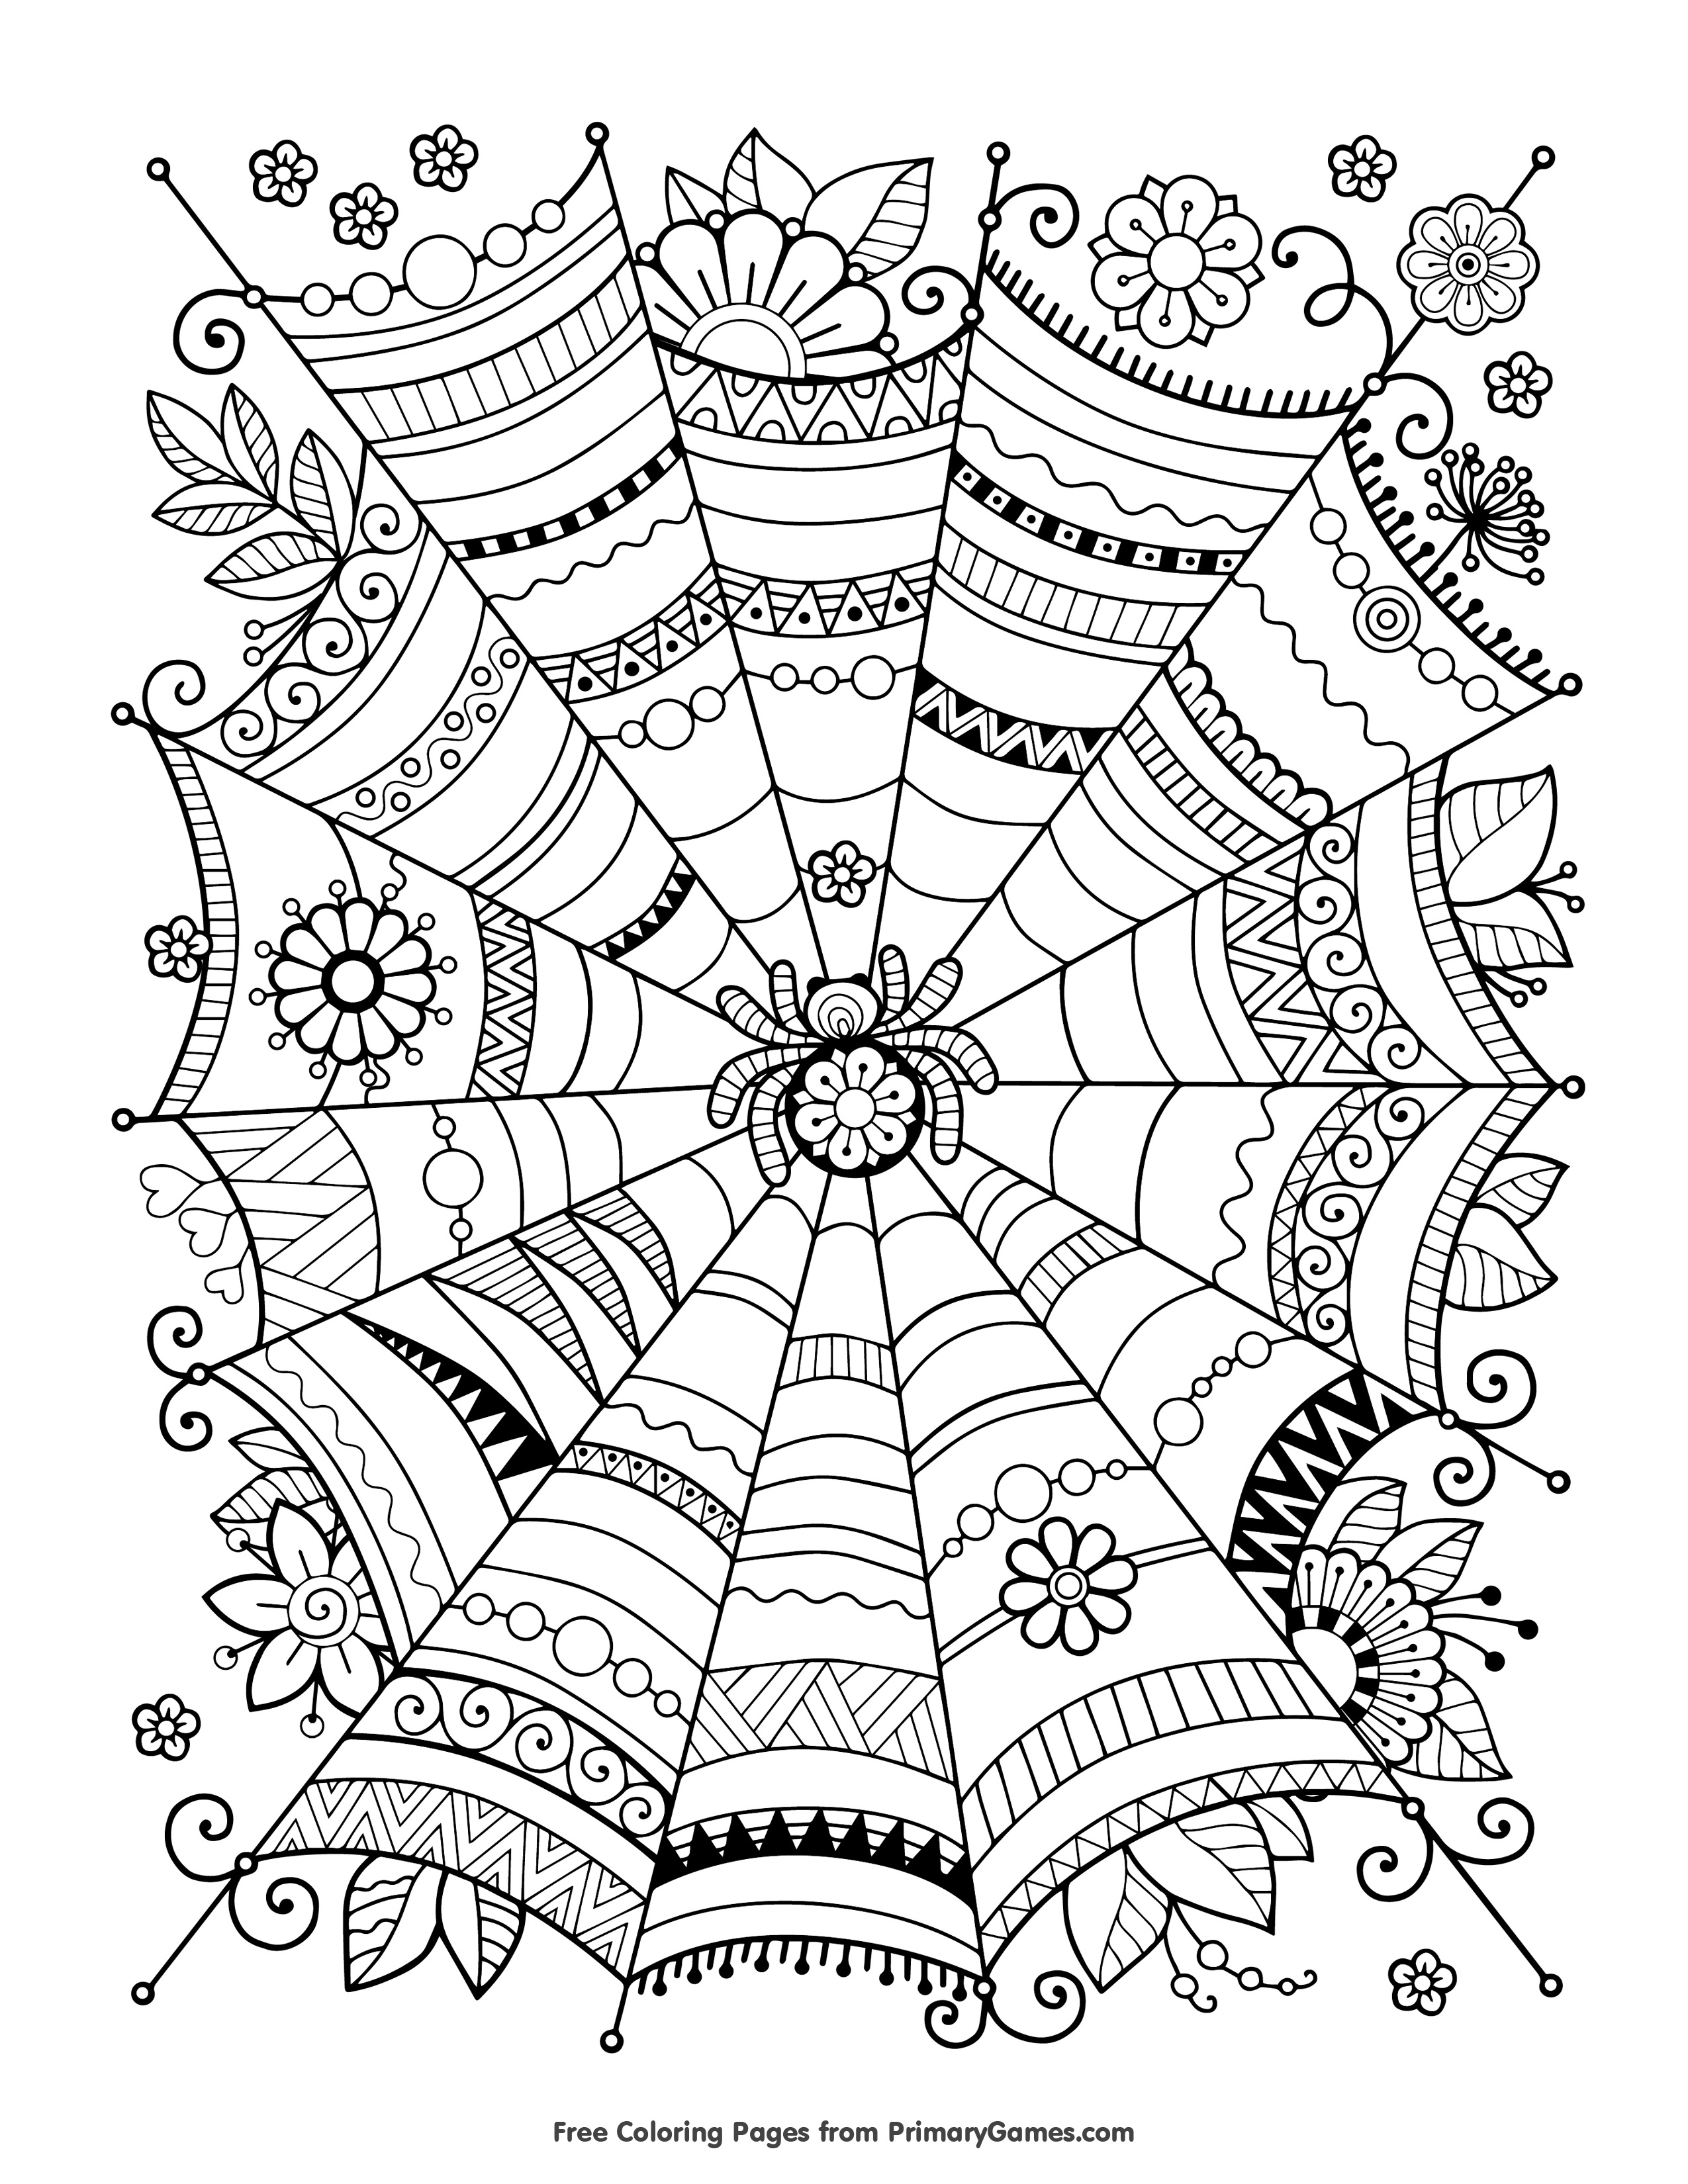 Free Halloween Coloring Pages For Adults & Kids - Happiness Is Homemade - Free Printable Coloring Cards For Adults